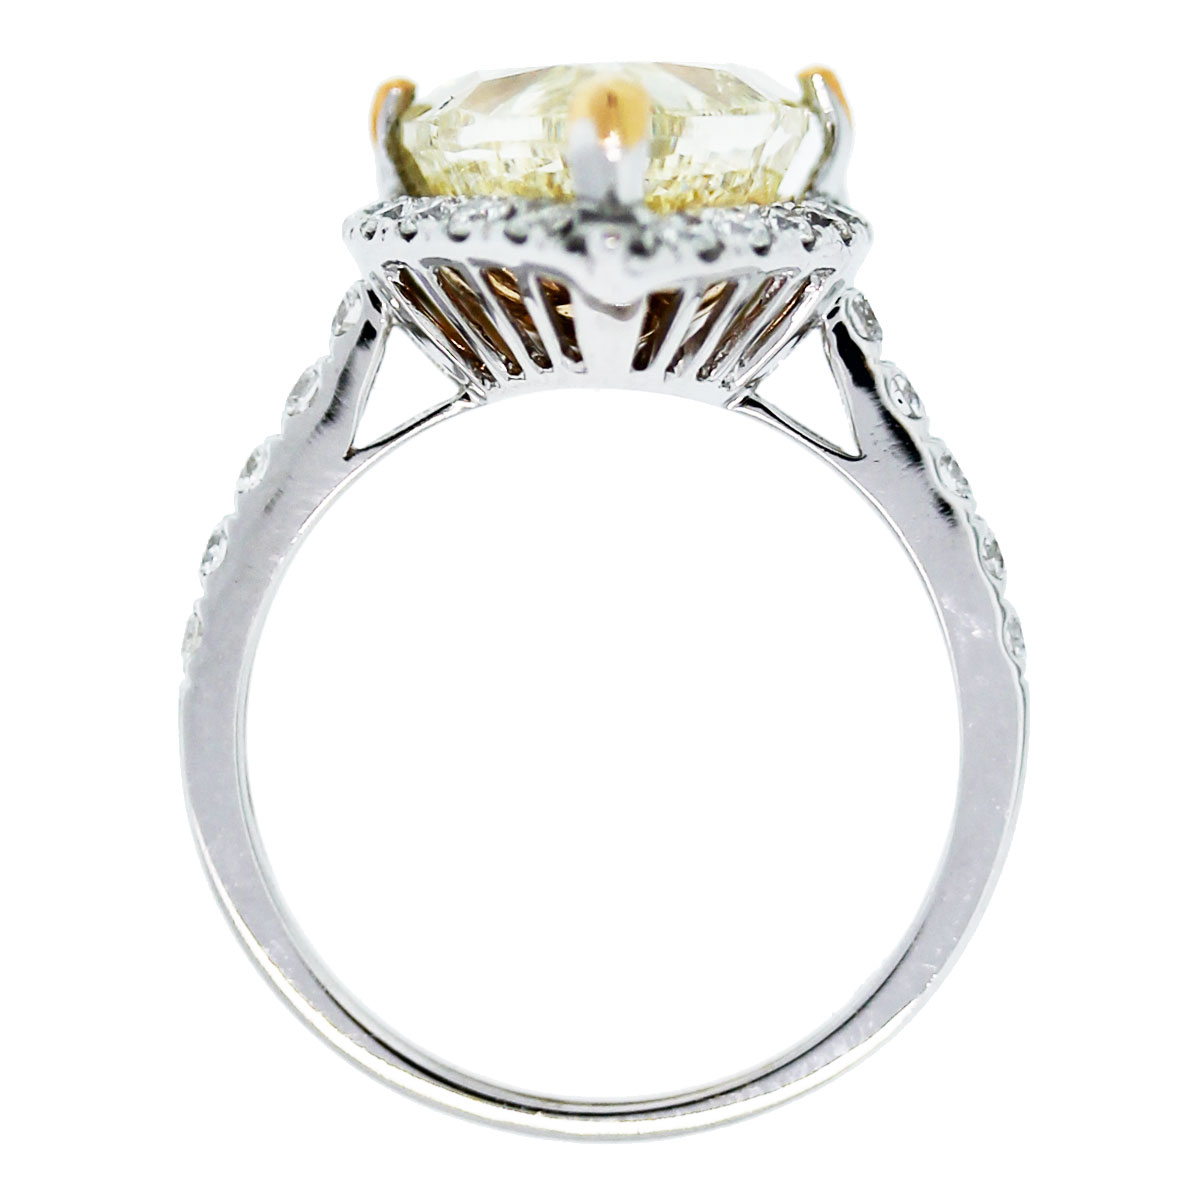 This 18k White Gold Pear Shape Fancy Yellow Diamond Halo Engagement Ring is beautiful